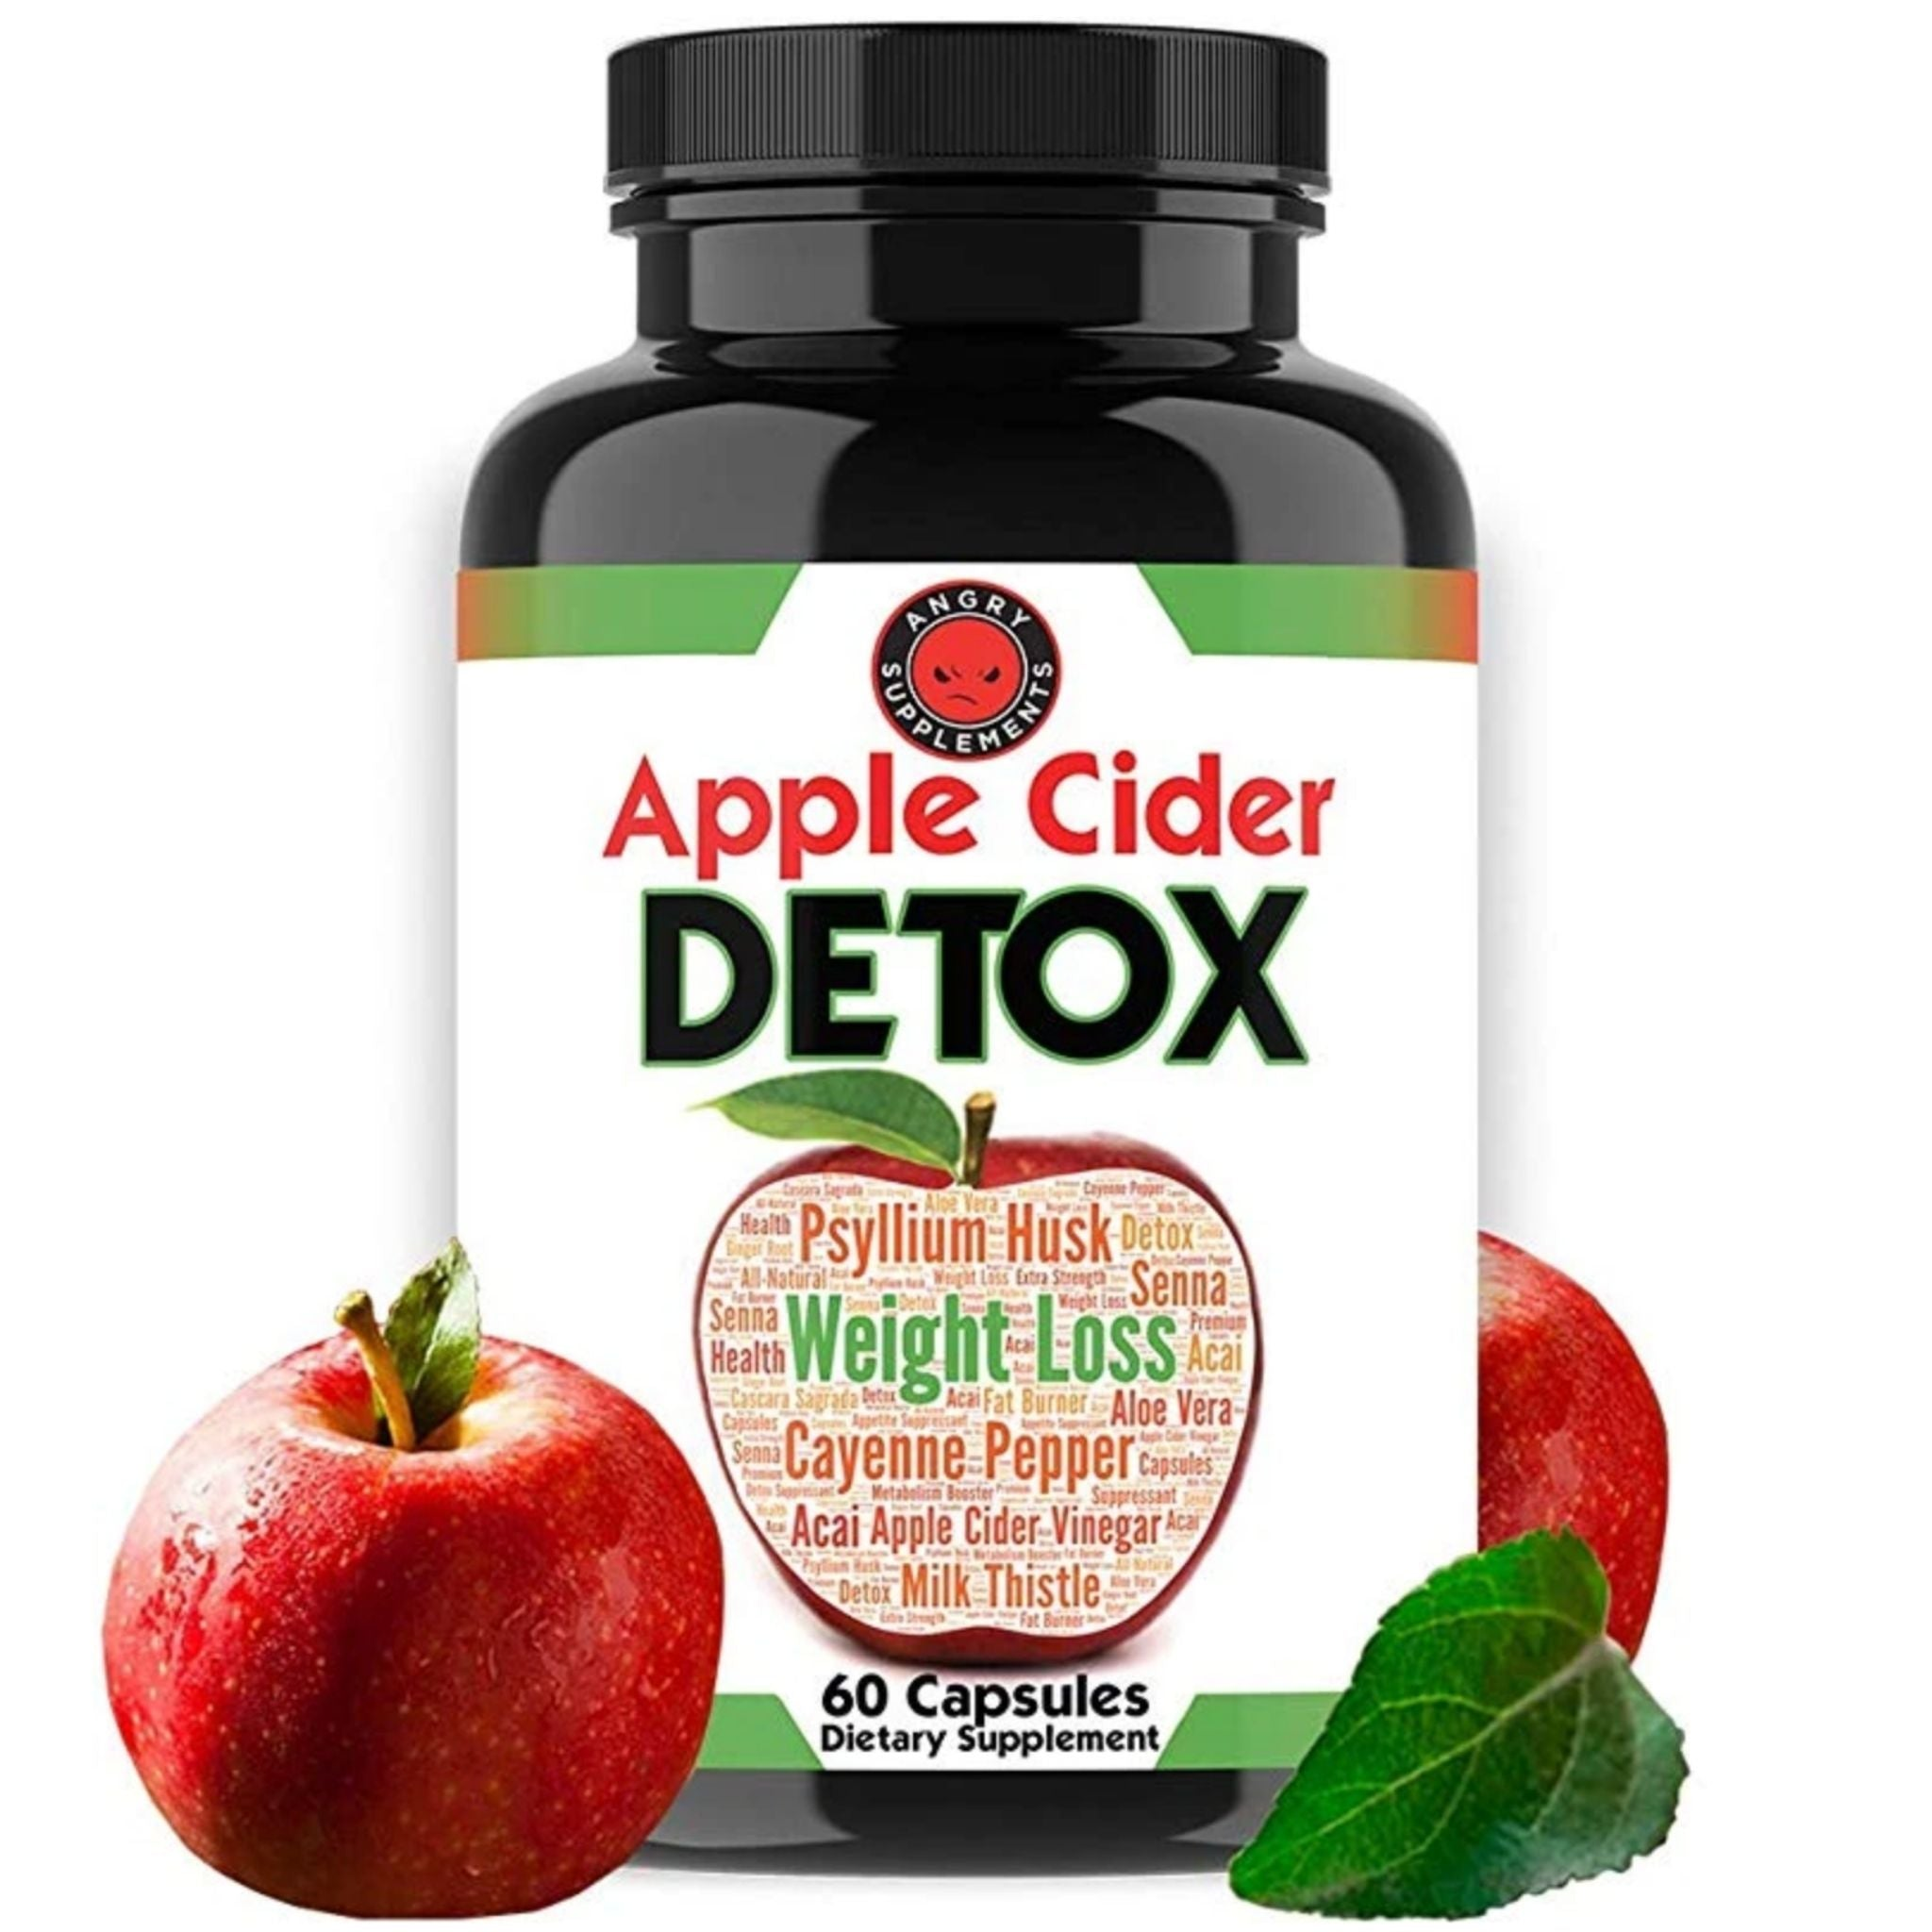 Helps excretion Eliminate waste in the intestines Reducing constipation - Apple Cider Detox (Made in USA)